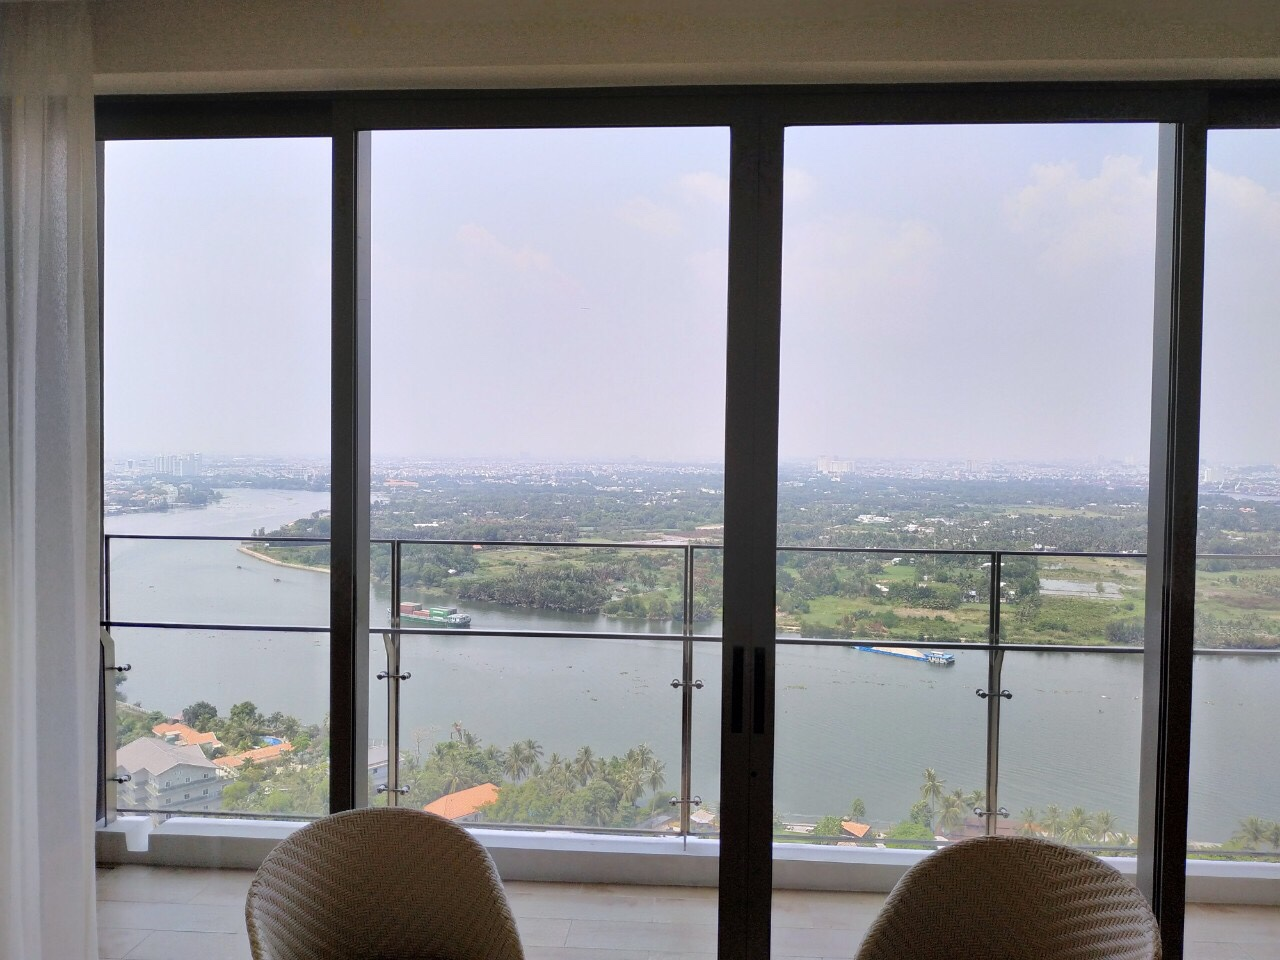 apartment for rent in district 2 hcmc the nassim apartment for rent in district 2 hcmc D223234(25)